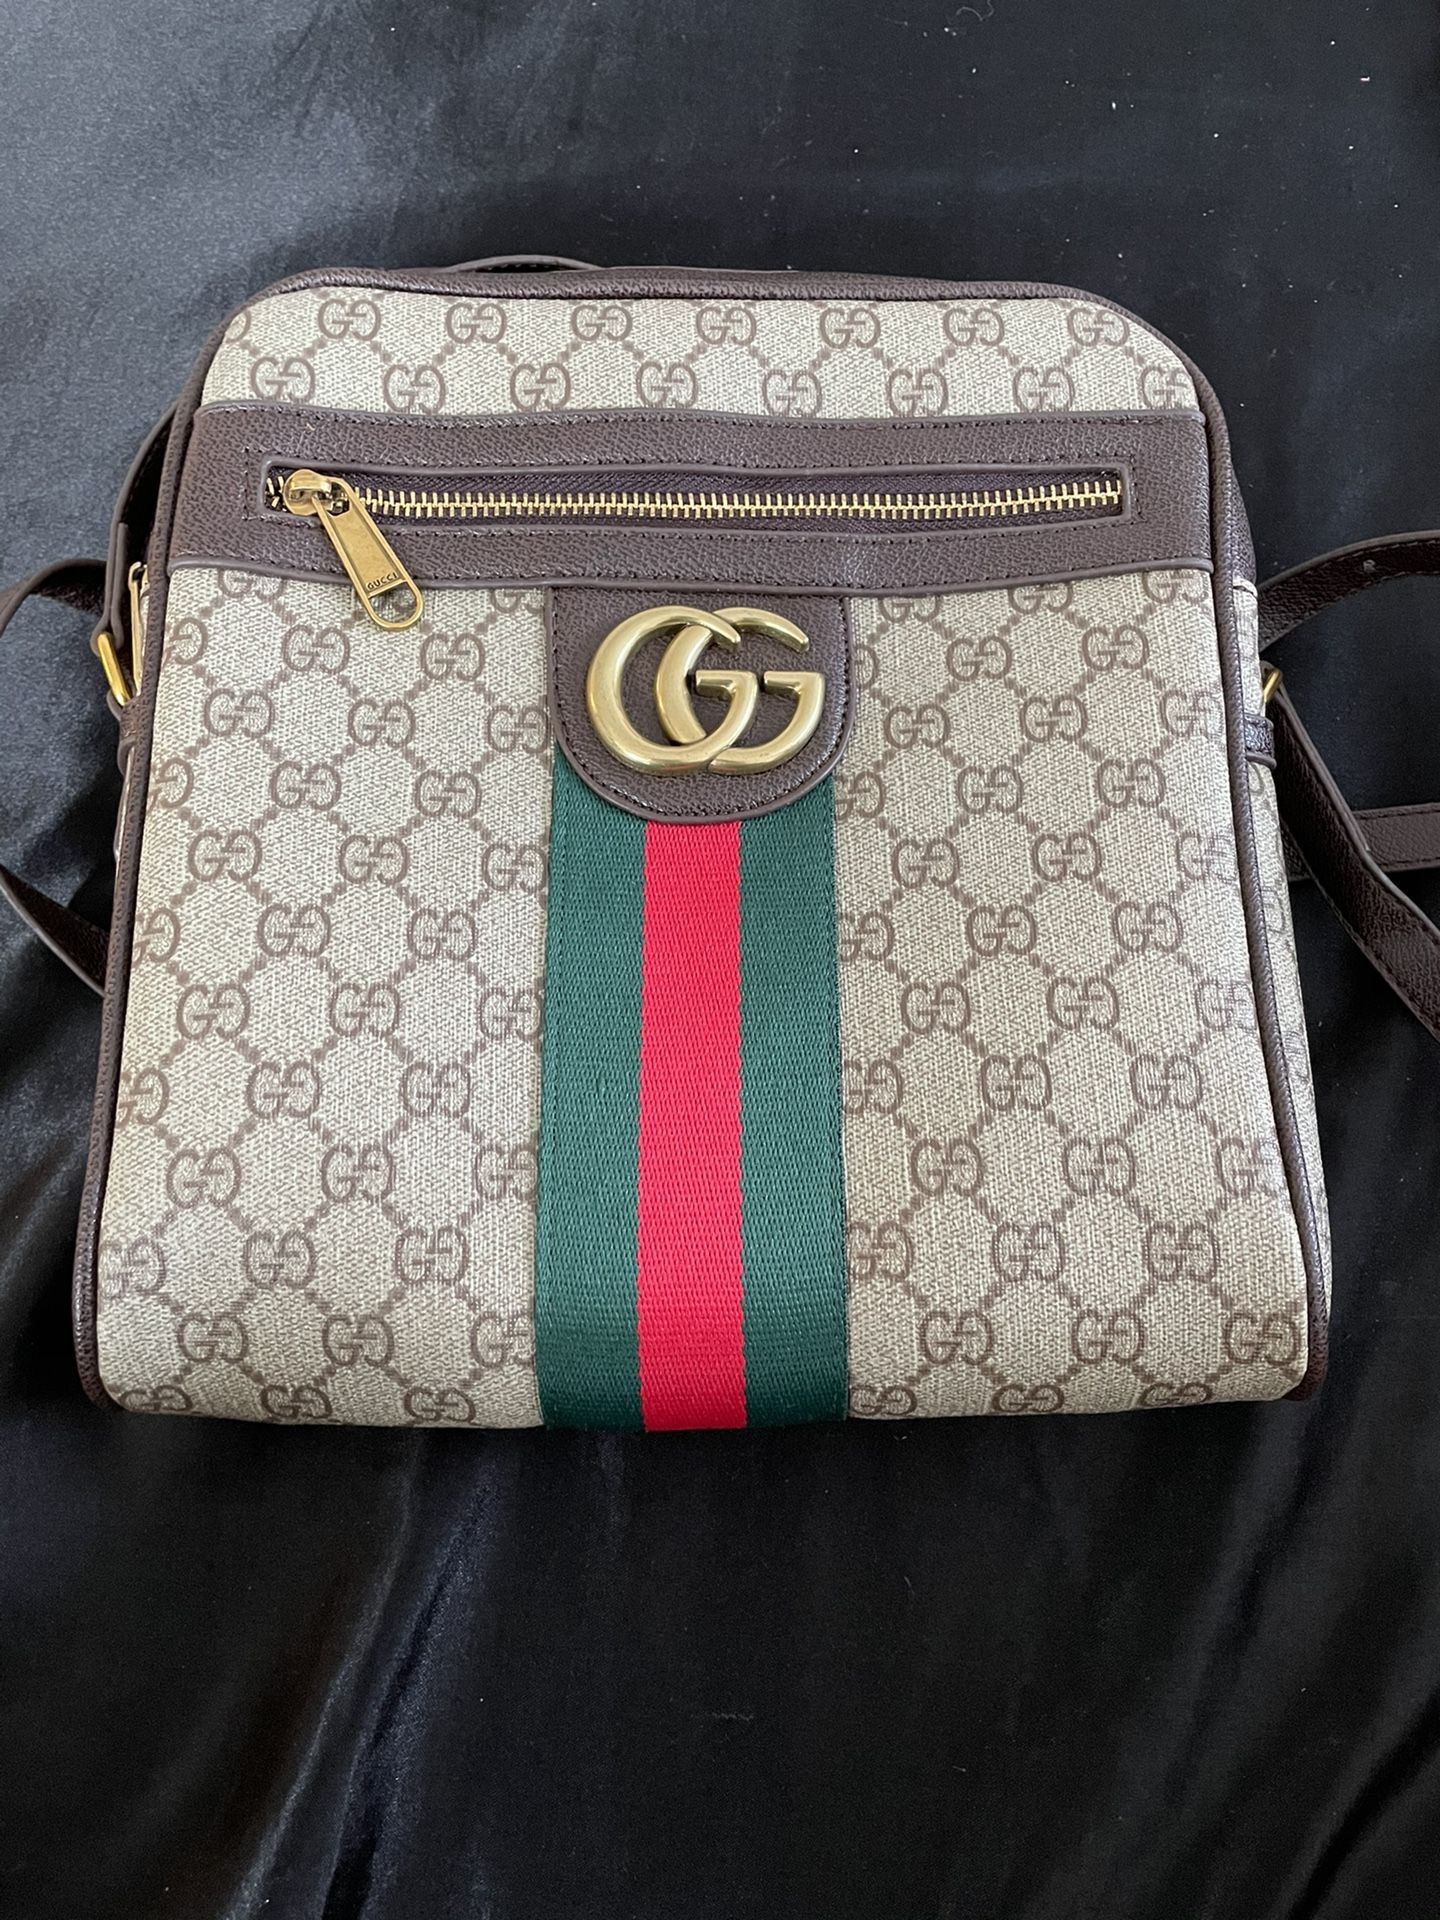 Gucci Bag Barely Used Looks New